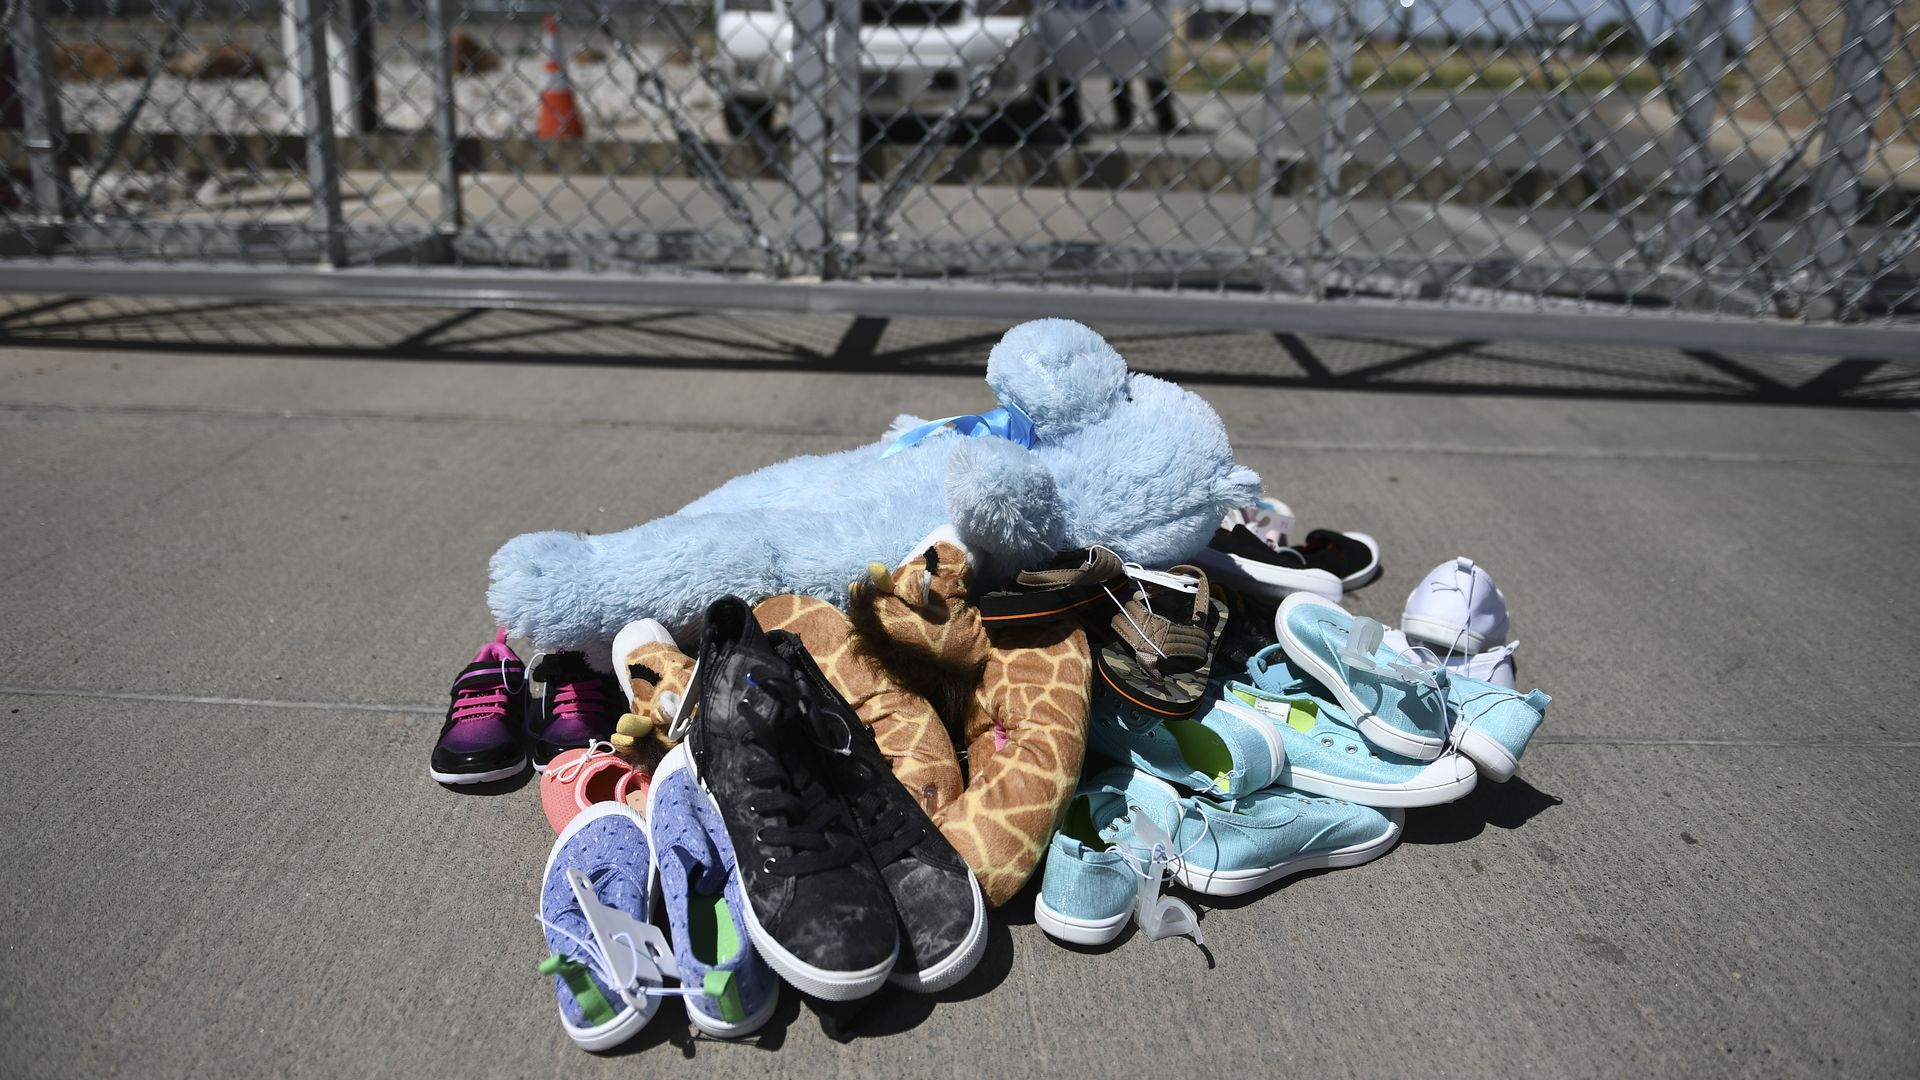 A pile of children's shoes and toys in front of a chain link fence at the border